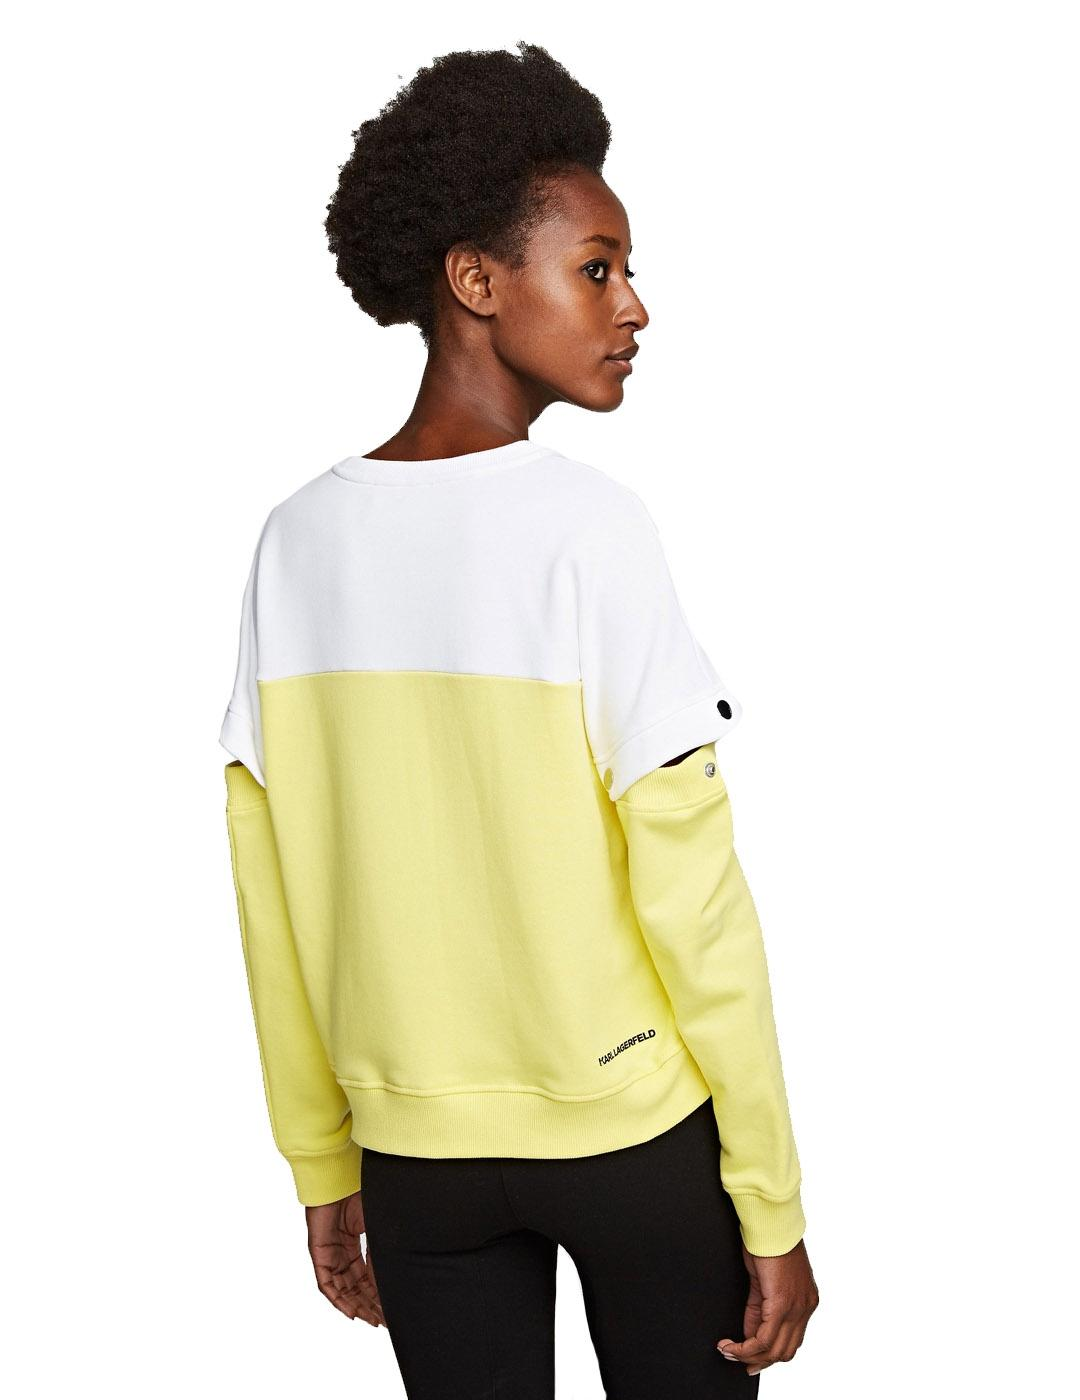 Sudadera Karl Lagerfeld amarilla Colorblock Cut Out Sleeve